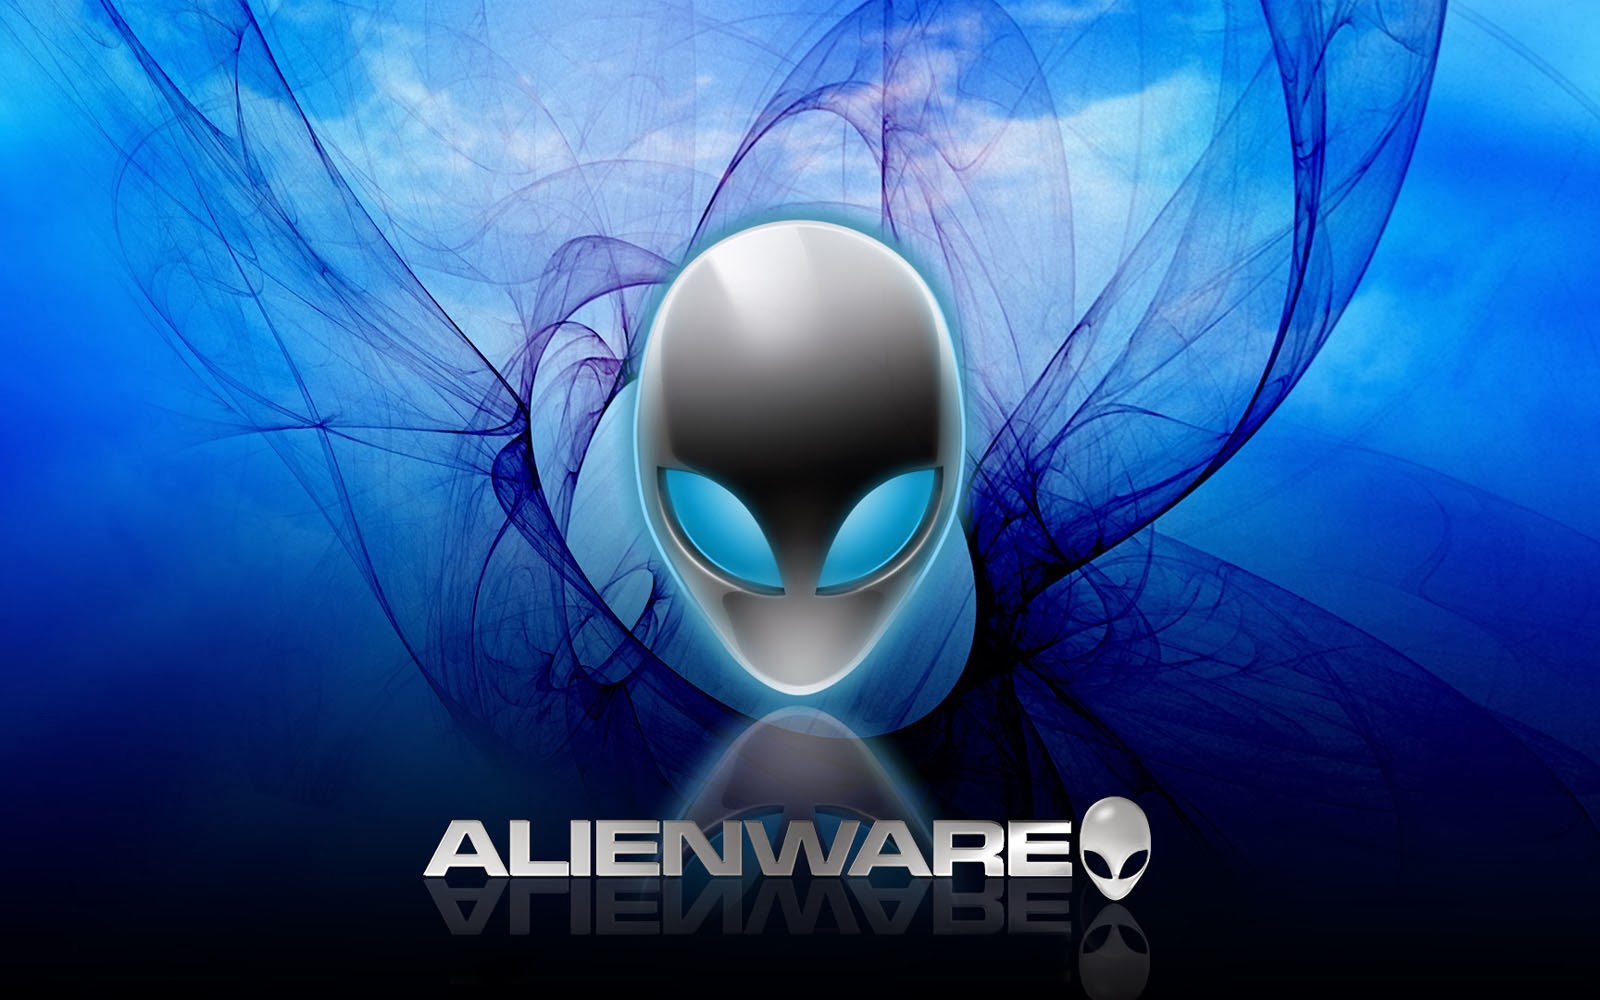 Wallpapers Alienware Backgrounds